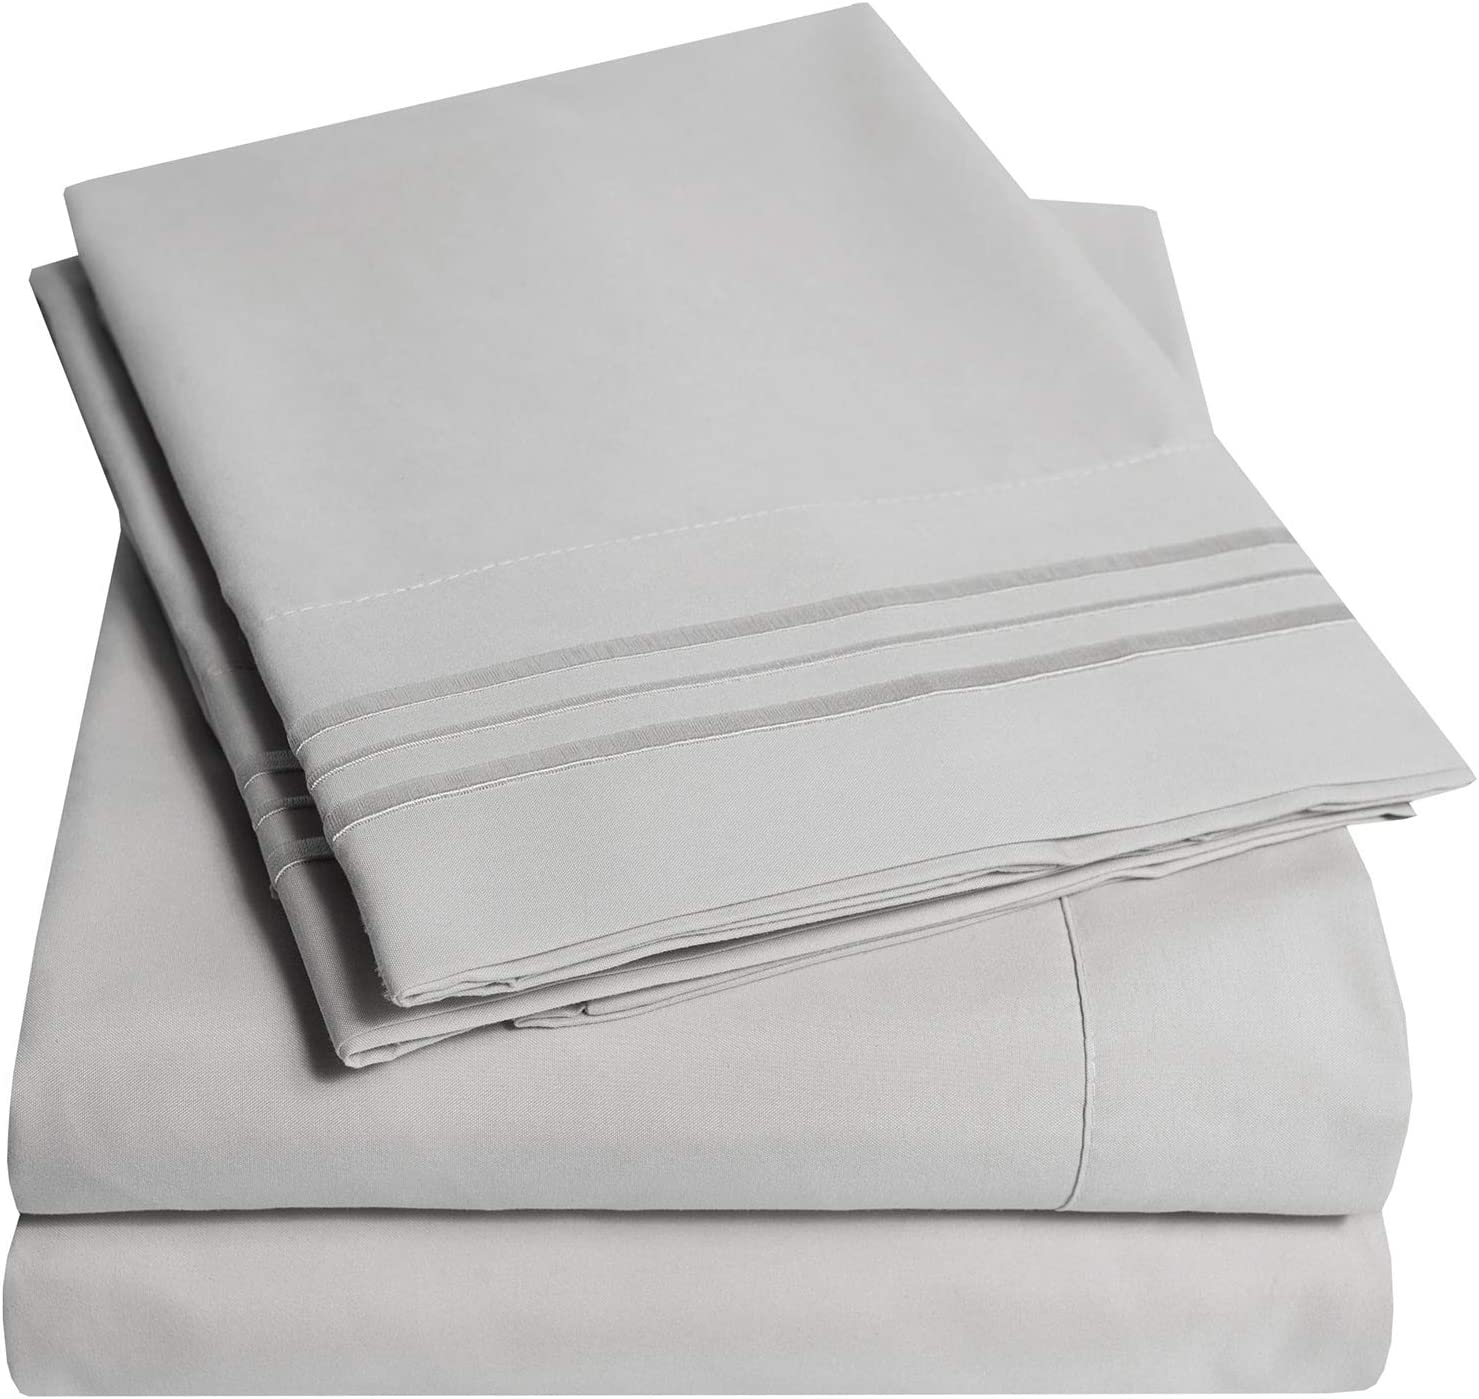 1500 Supreme Collection Extra Soft Split King Sheets Set, Silver - Luxury Bed Sheets Set with Deep Pocket Wrinkle Free Hypoallergenic Bedding, Over 40 Colors, Split King Size, Silver